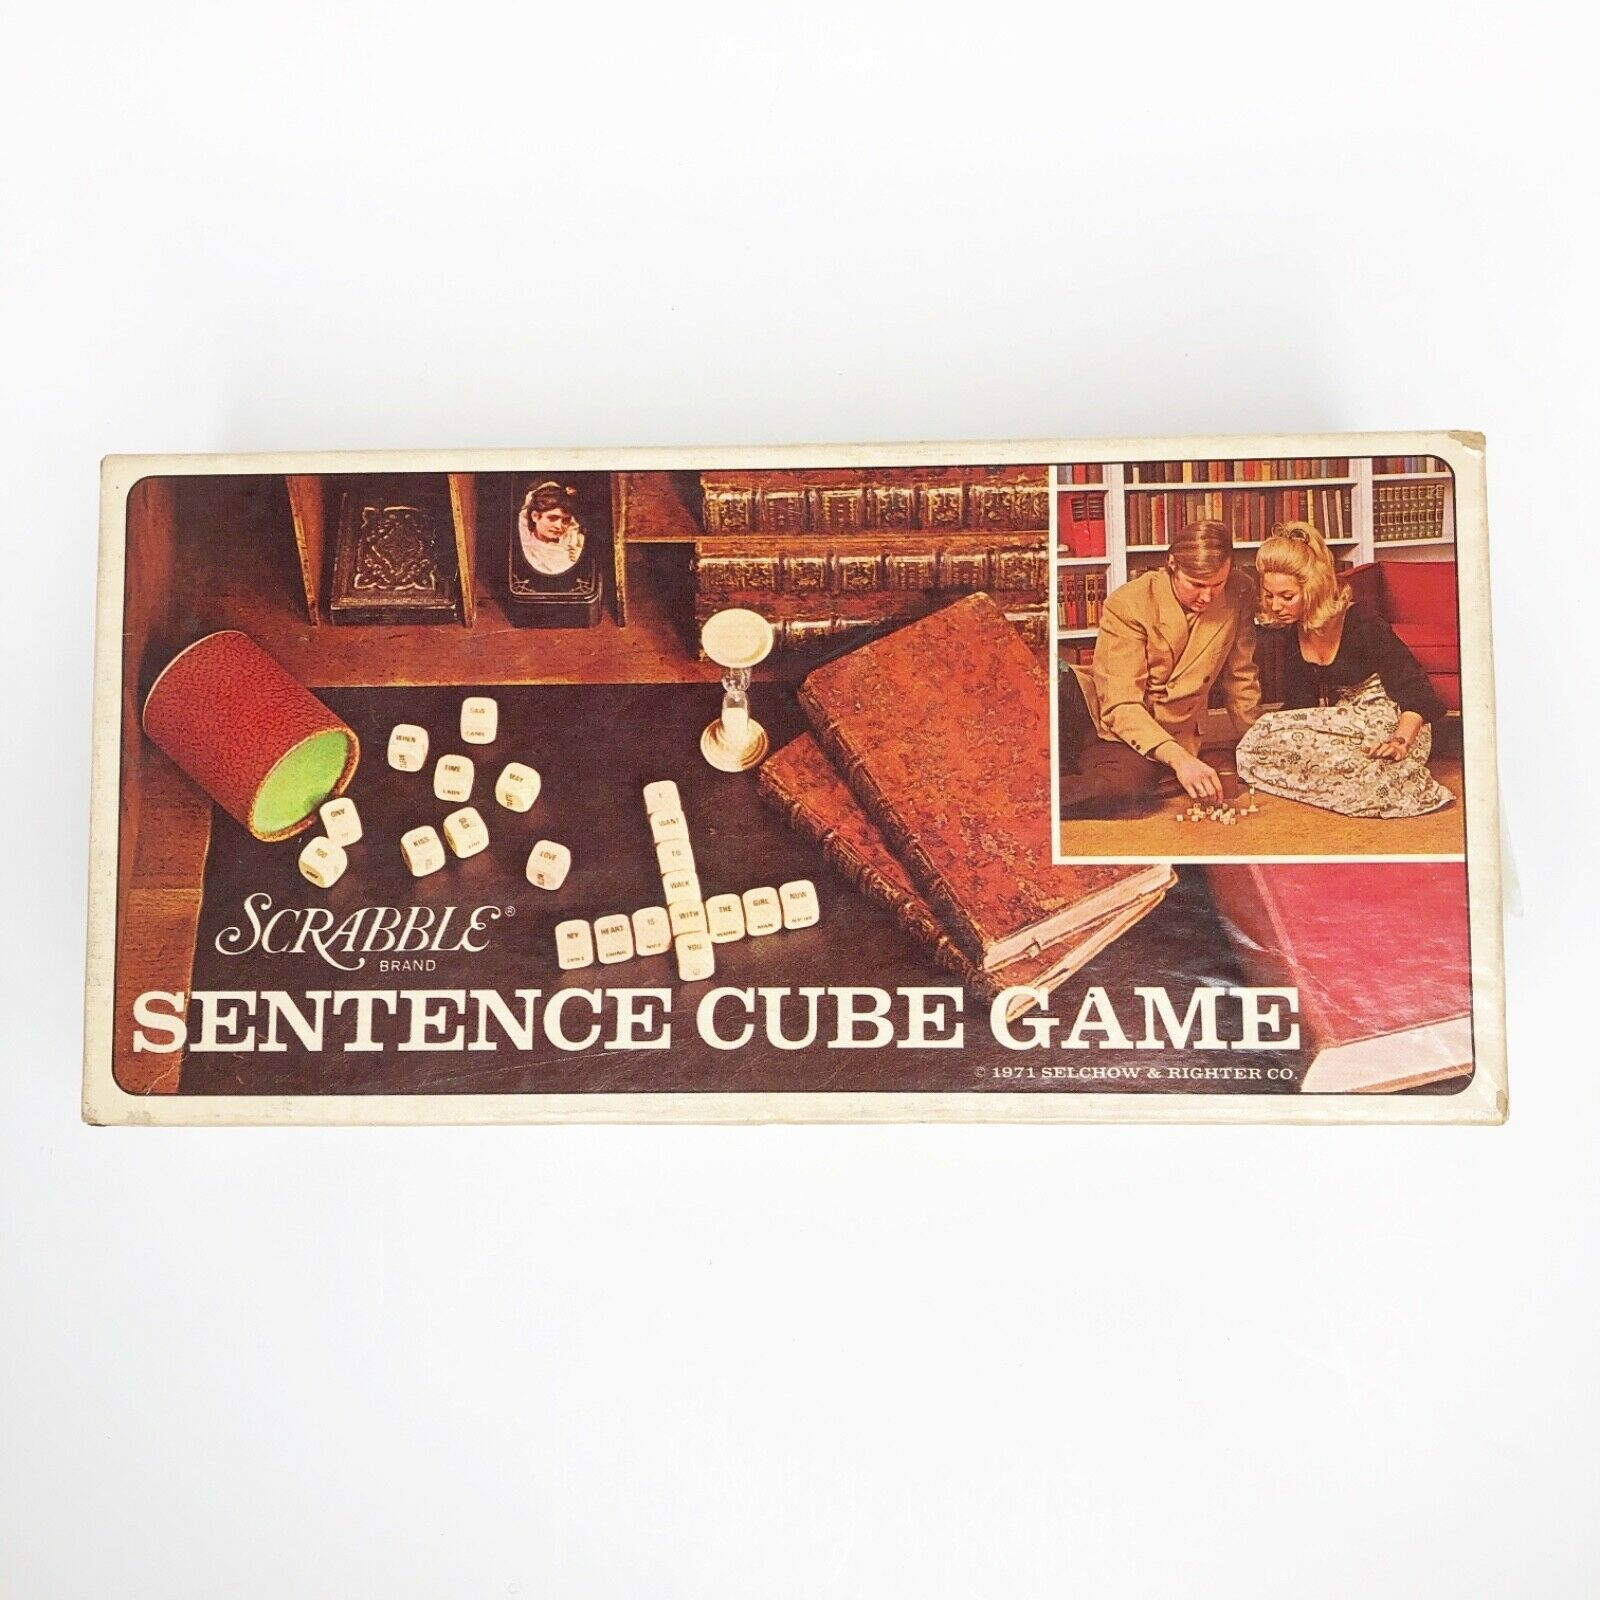 Primary image for Vintage Scrabble Sentence Cube Game 1971 Selchow & Righter Company No Timer